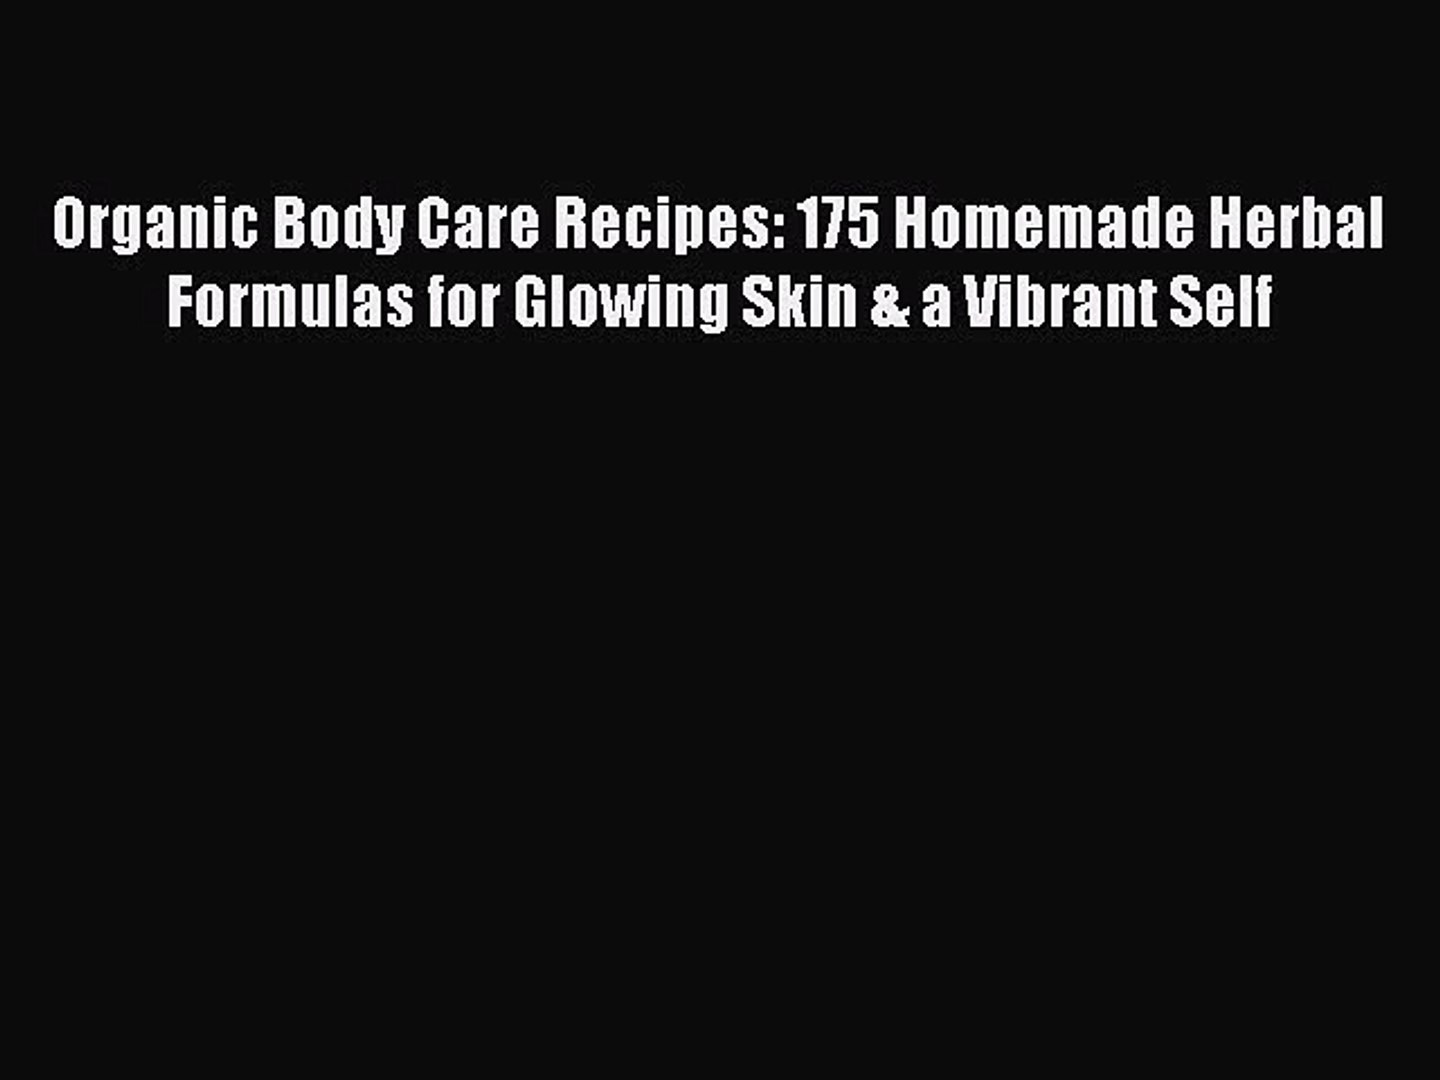 Download Organic Body Care Recipes: 175 Homemade Herbal Formulas for Glowing Skin & a Vibrant